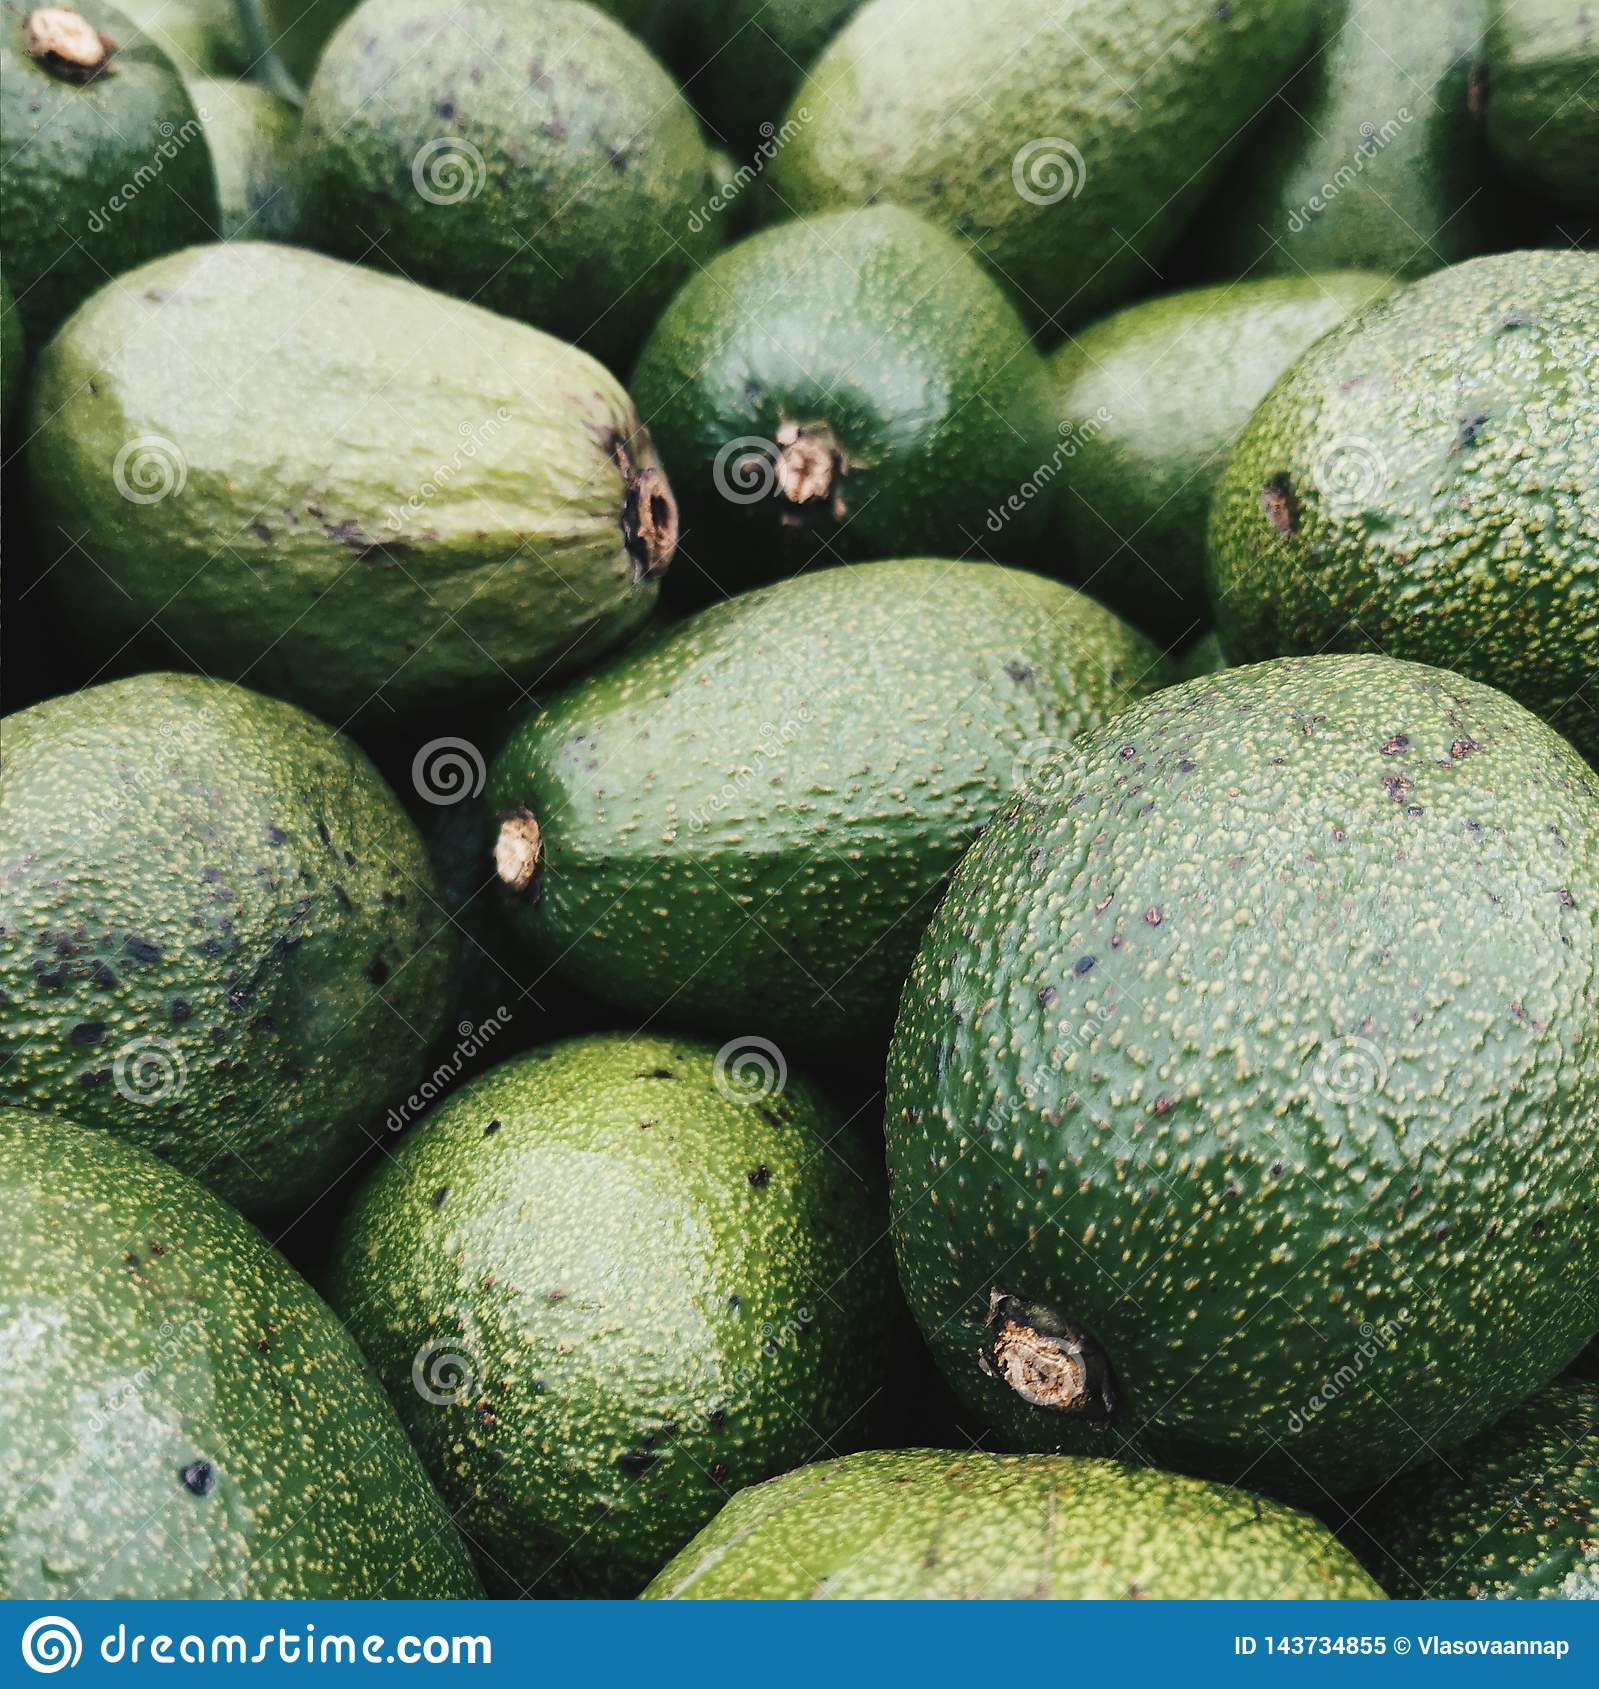 Avocado. It is for salads or sandwiches.